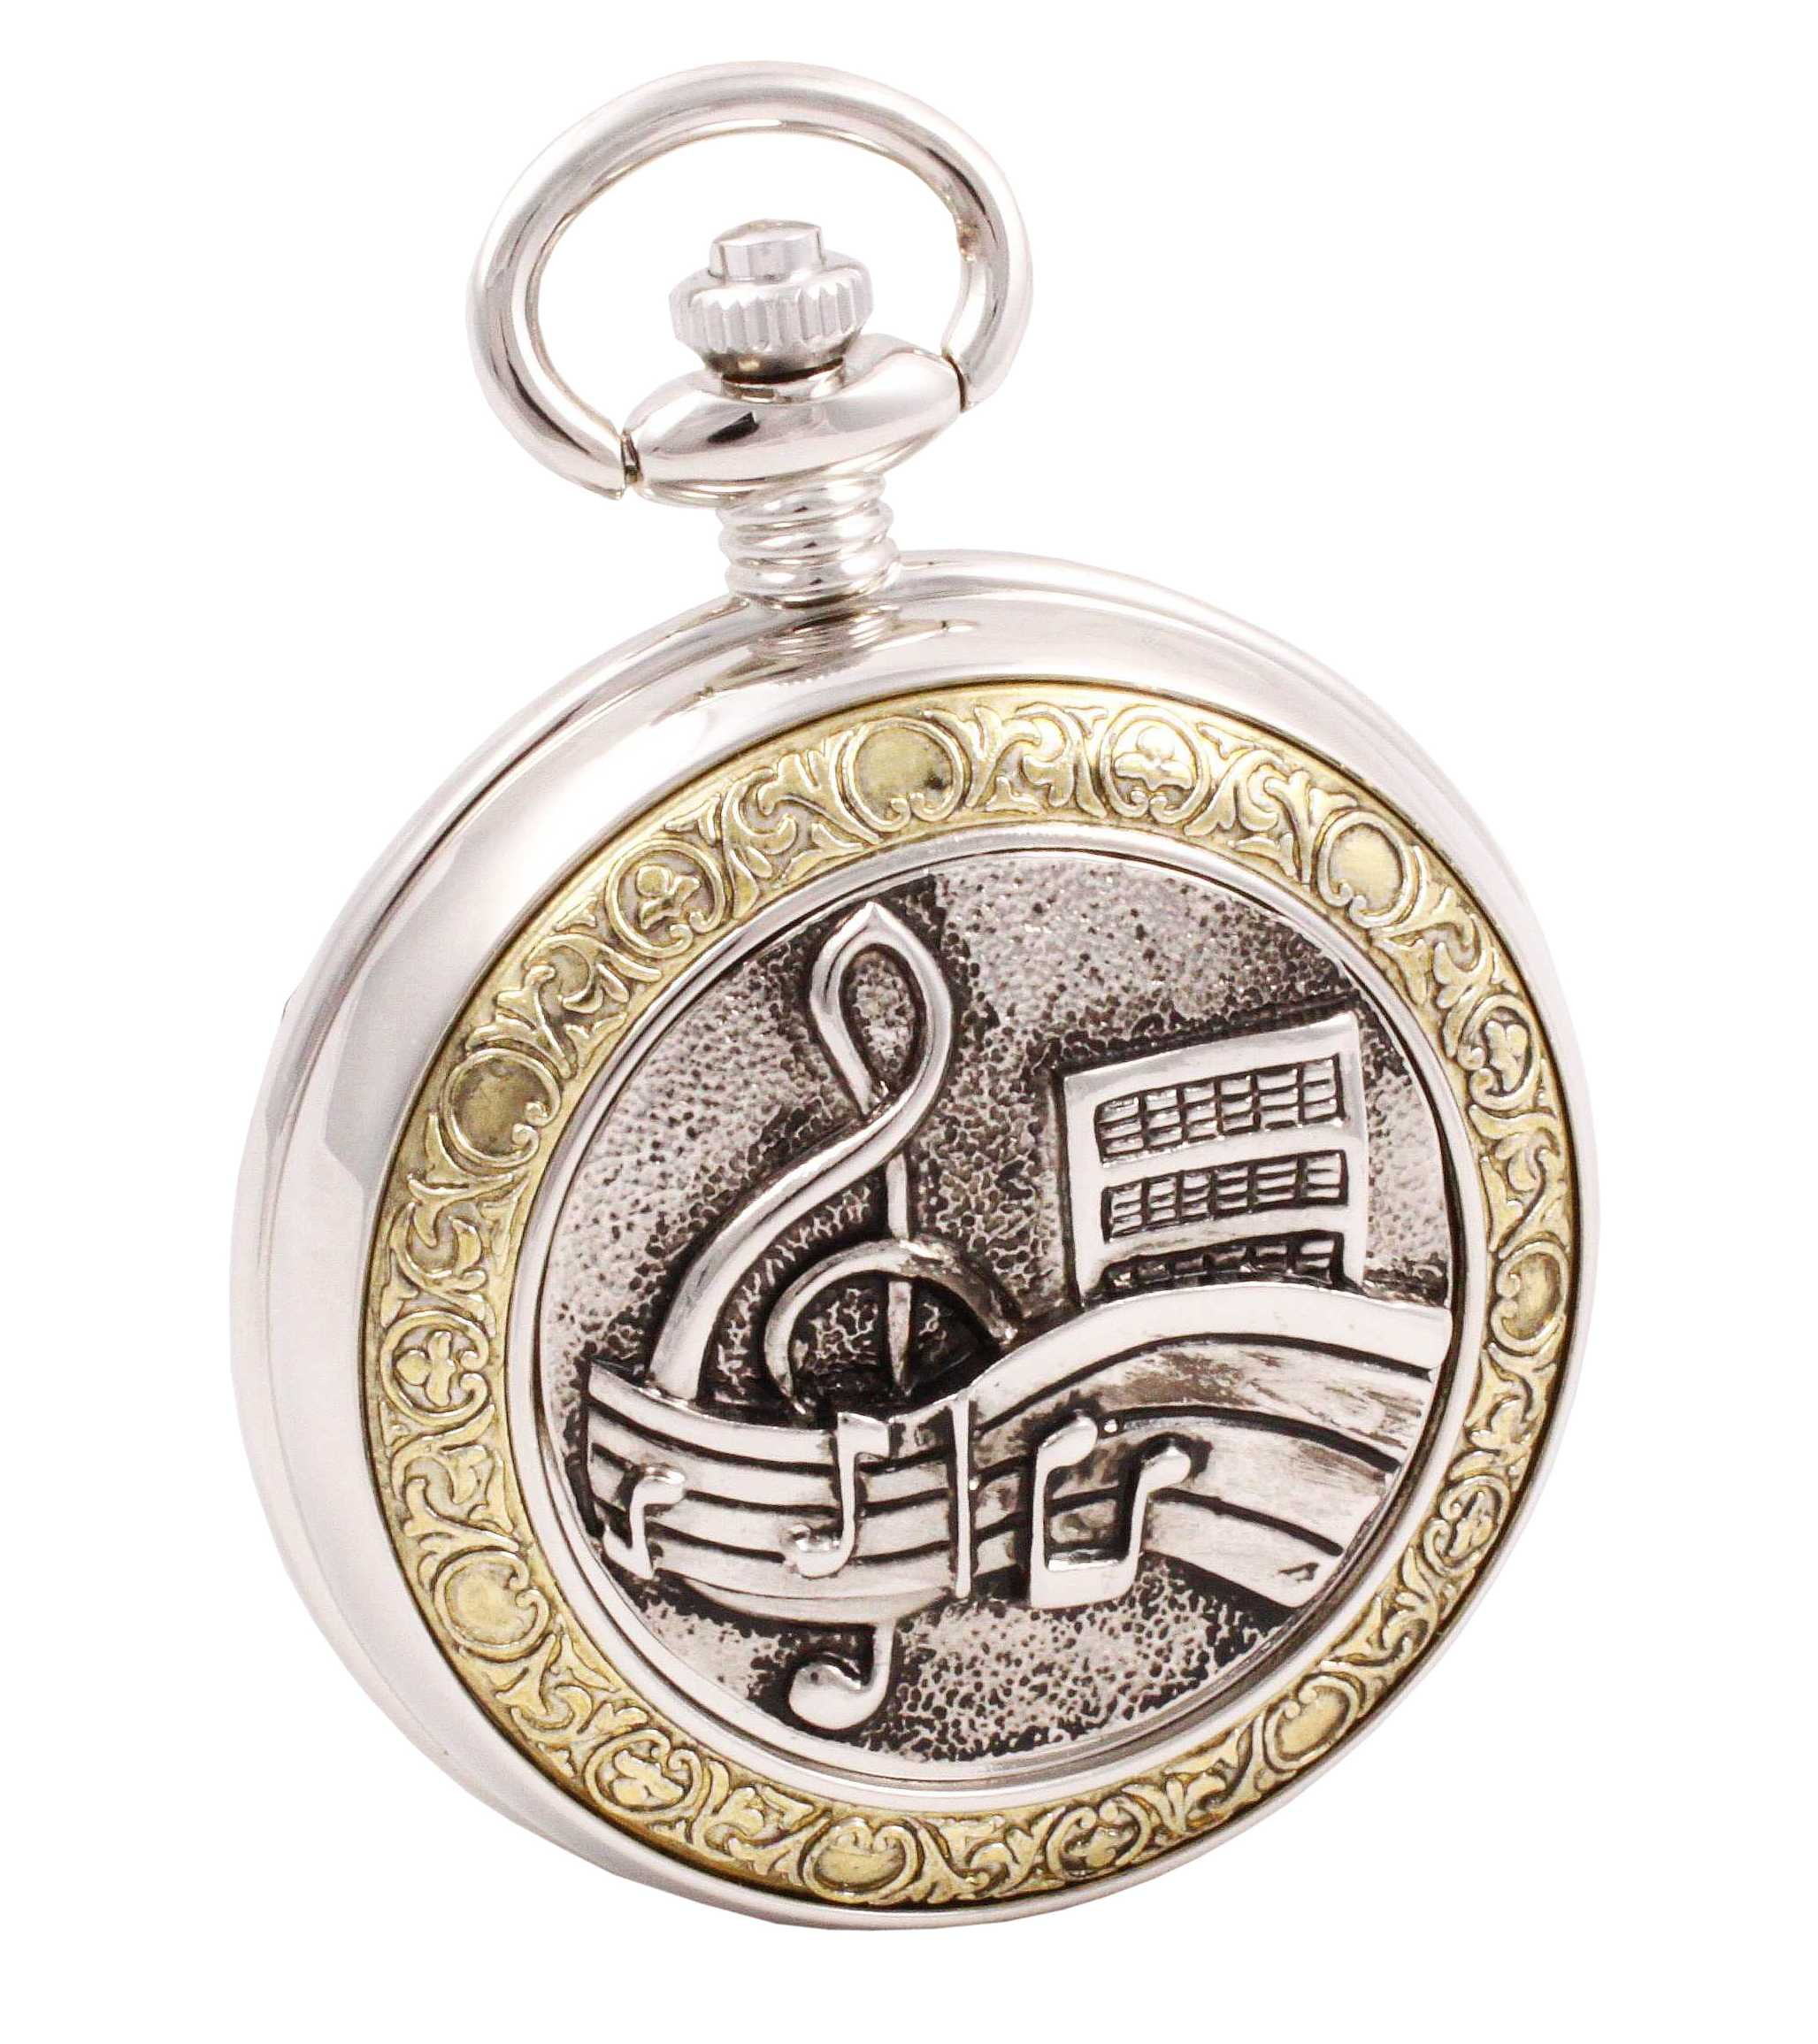 Shoppewatch Pocket Watch Music Symbols Roman Numeral with Chain for Musician Steampunk Cosplay PW-94 by ShoppeWatch